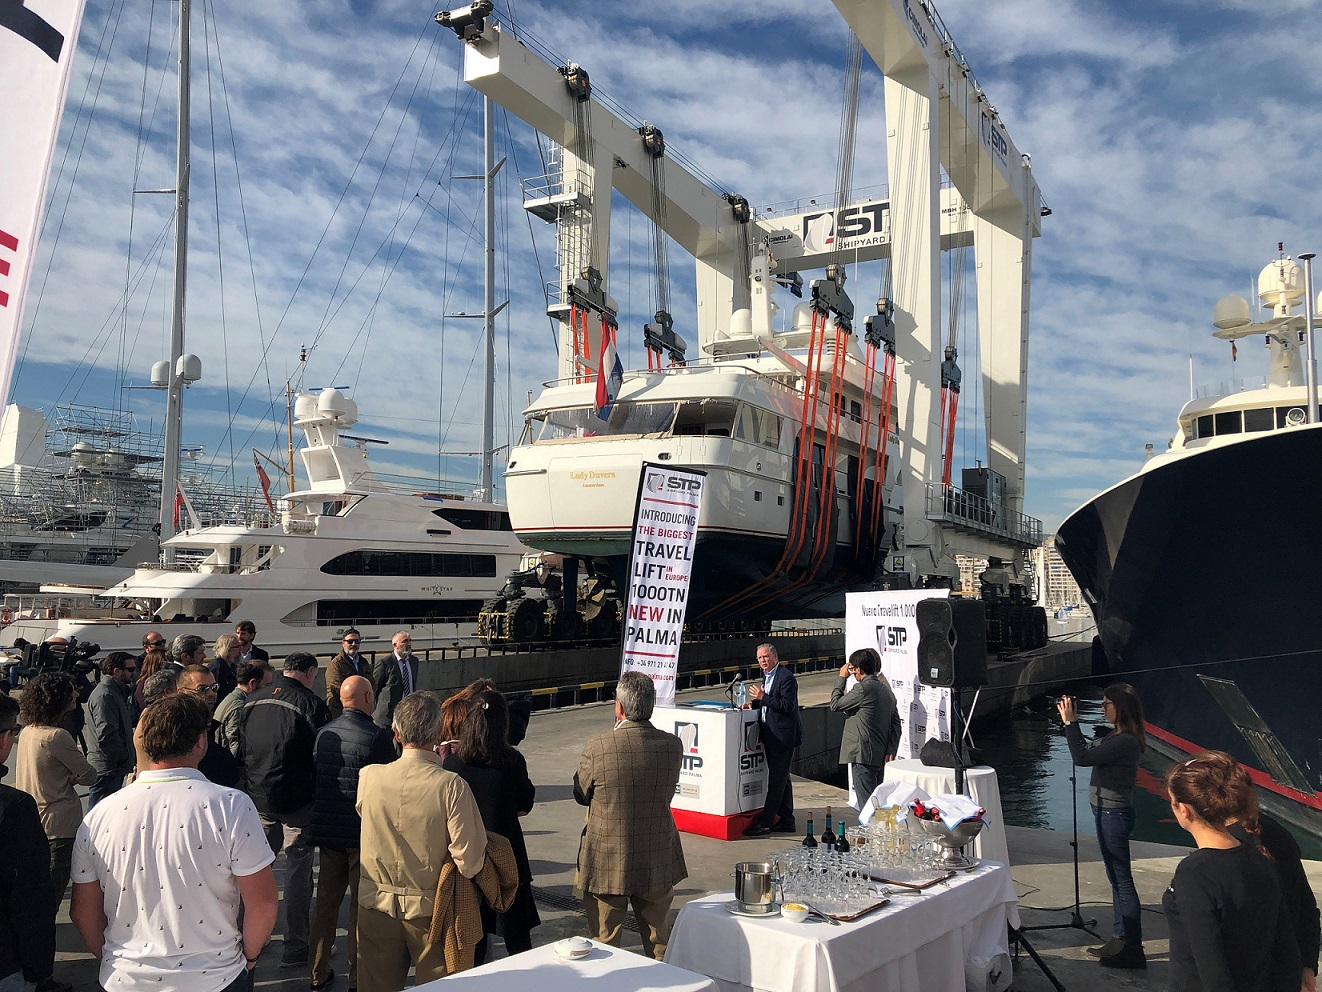 With the introduction of the new 1,000TN travelift, STP Shipyard Palma consolidates its world leader position in yacht repair